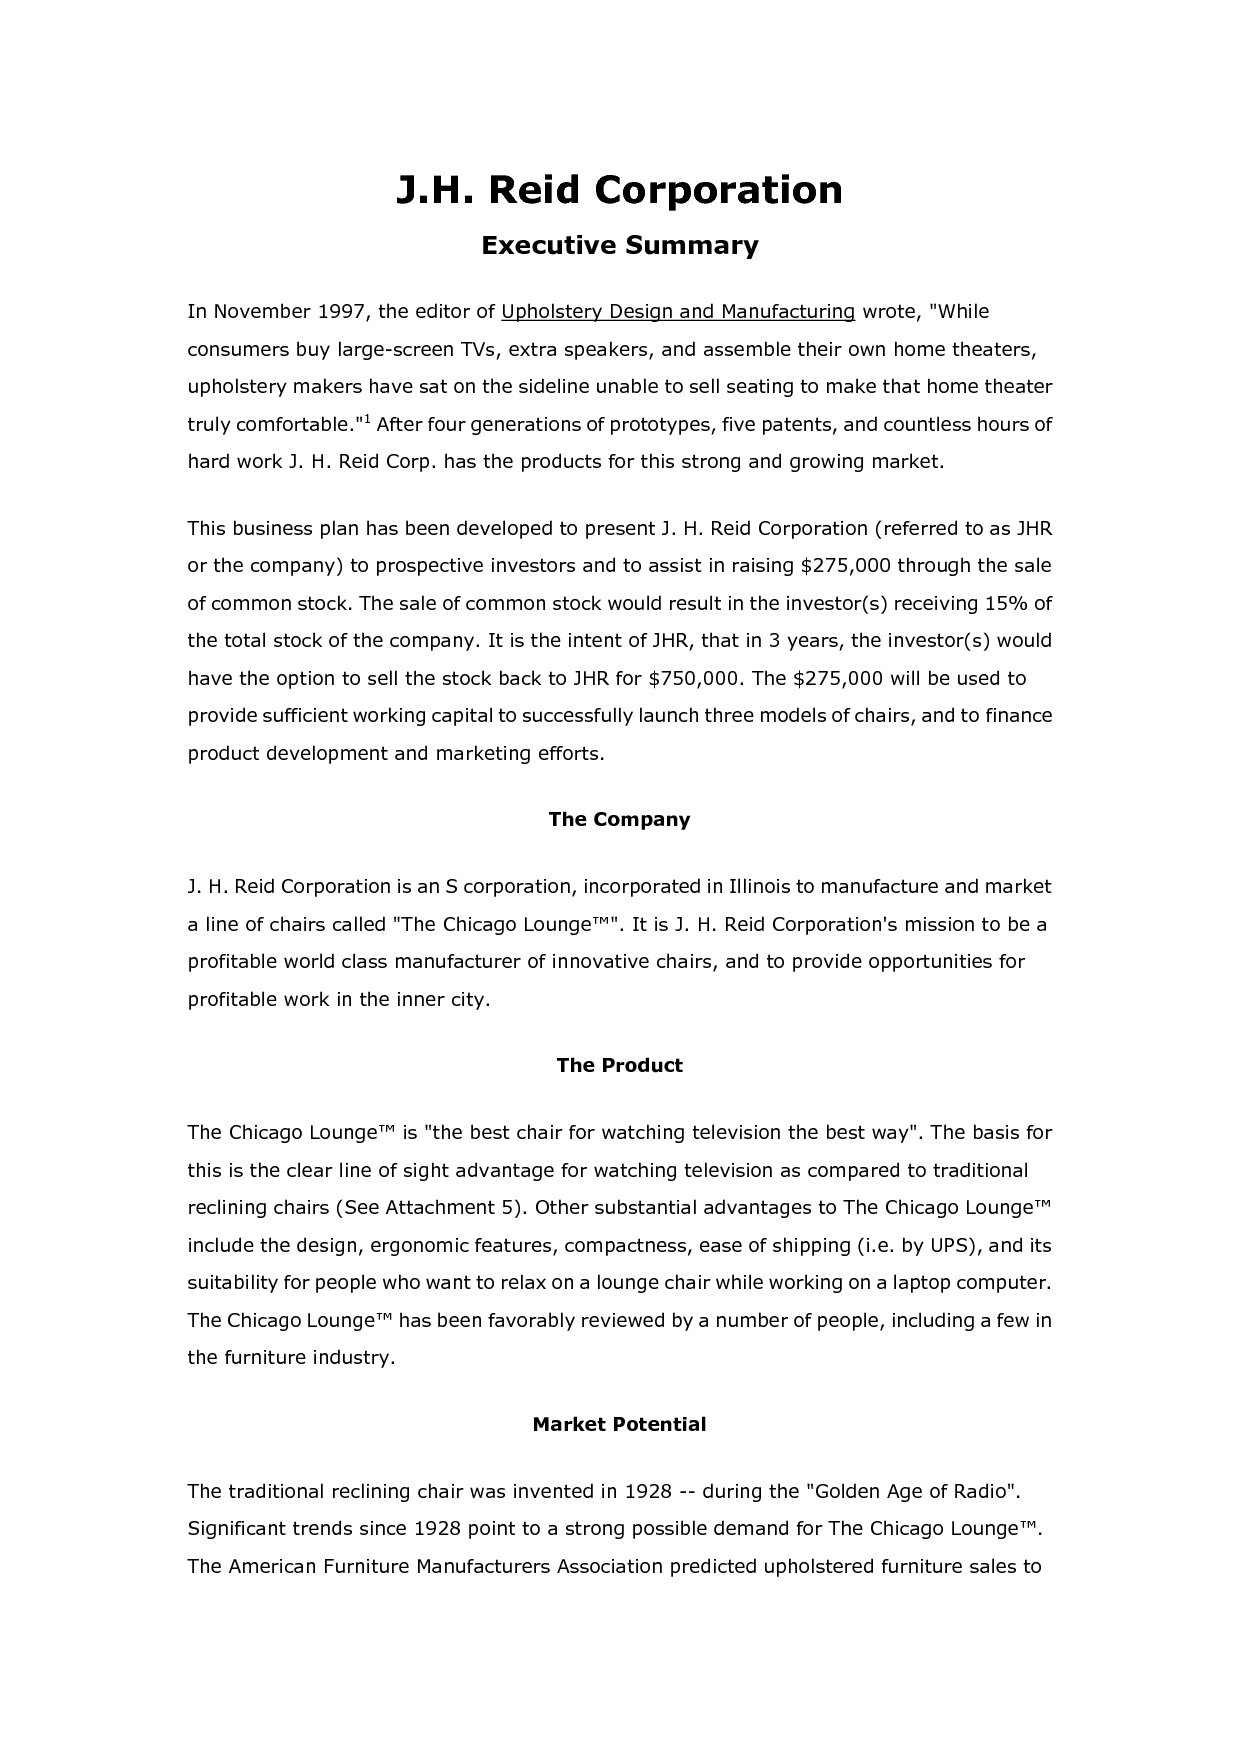 recycling persuasive essay thesis statement for a persuasive essay  modest proposal essay examples proposal essays proposal essay on recycling persuasive essays